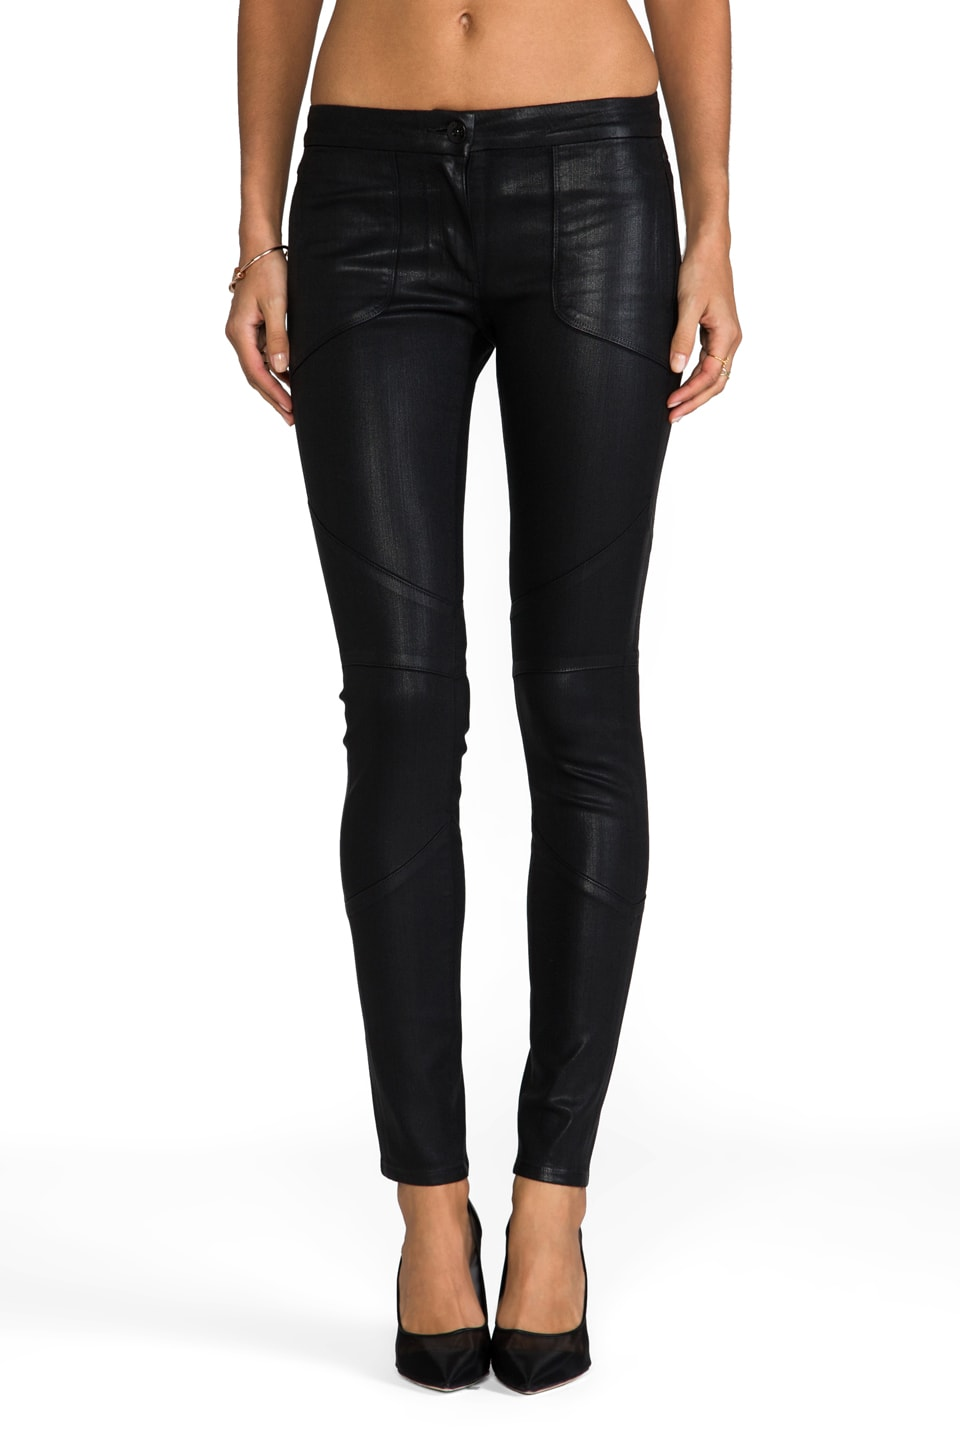 3x1 W1 Biker Pant in Destructo